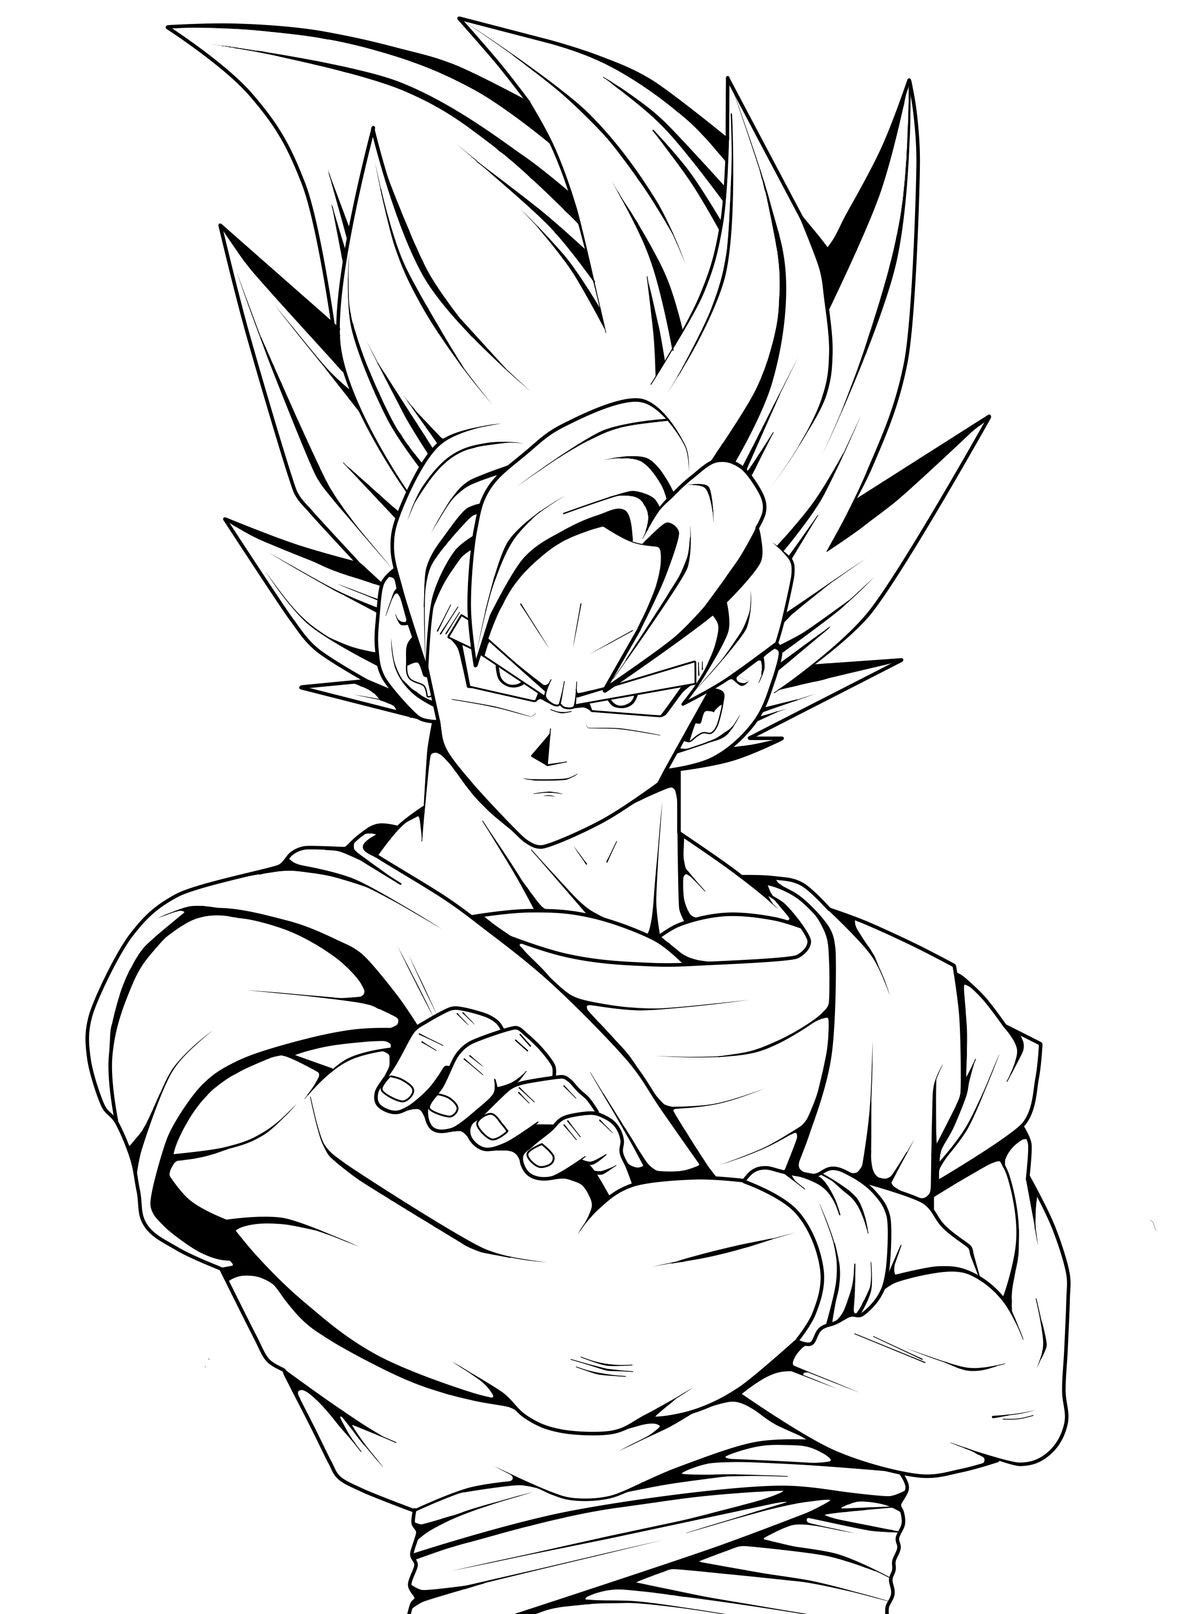 A Dessiner Coloriage Dragon Ball Coloriage Dragon Coloriage Dragon Ball Z